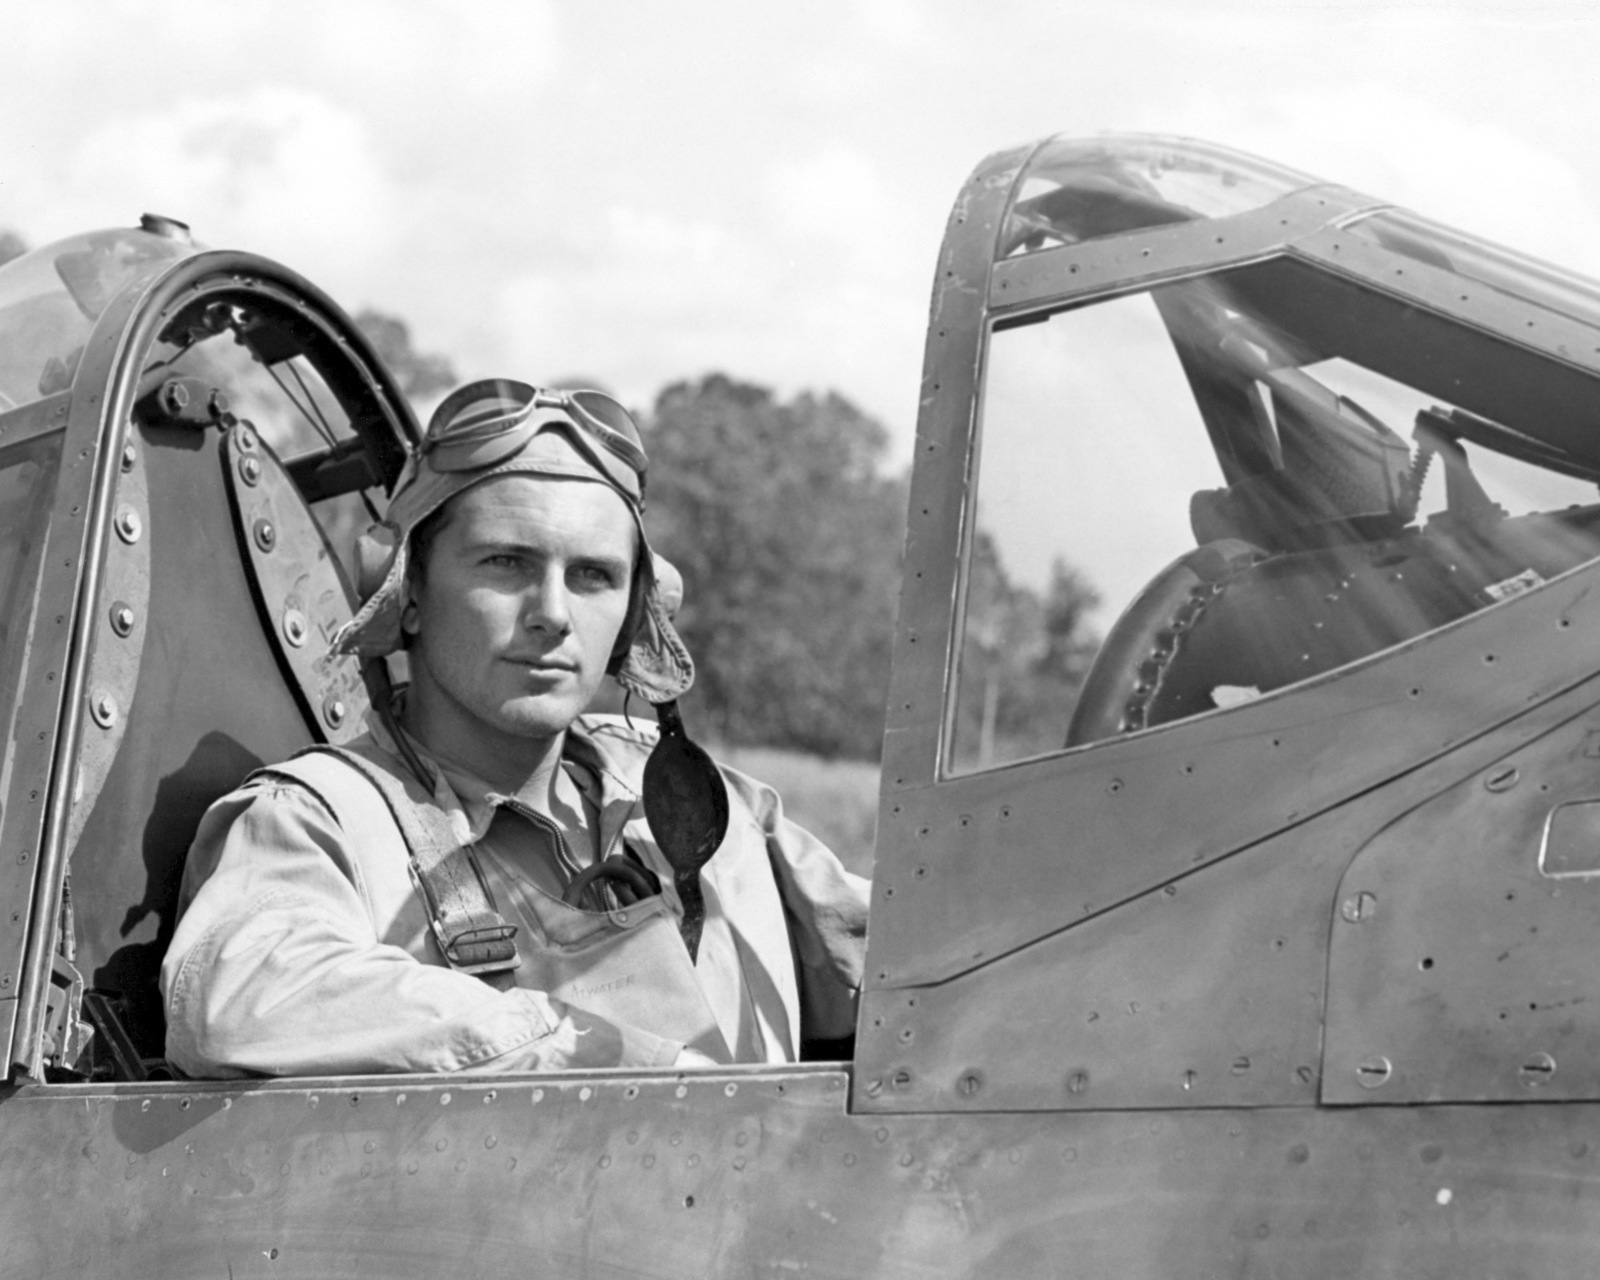 "World War II (WWII) era photograph of US Marine Corps (USMC) First Lieutenant (1LT) Paul A. Mullen, taken in the cockpit of a USMC F4U""CORSAIR""aircraft at Guadalcanal, June 6, 1943. 1LT Mullen is an ace pilot and is credited with 6 kills. His hometown is 45 Ordale Boulevard, Pittsburgh, Pennsylvania"